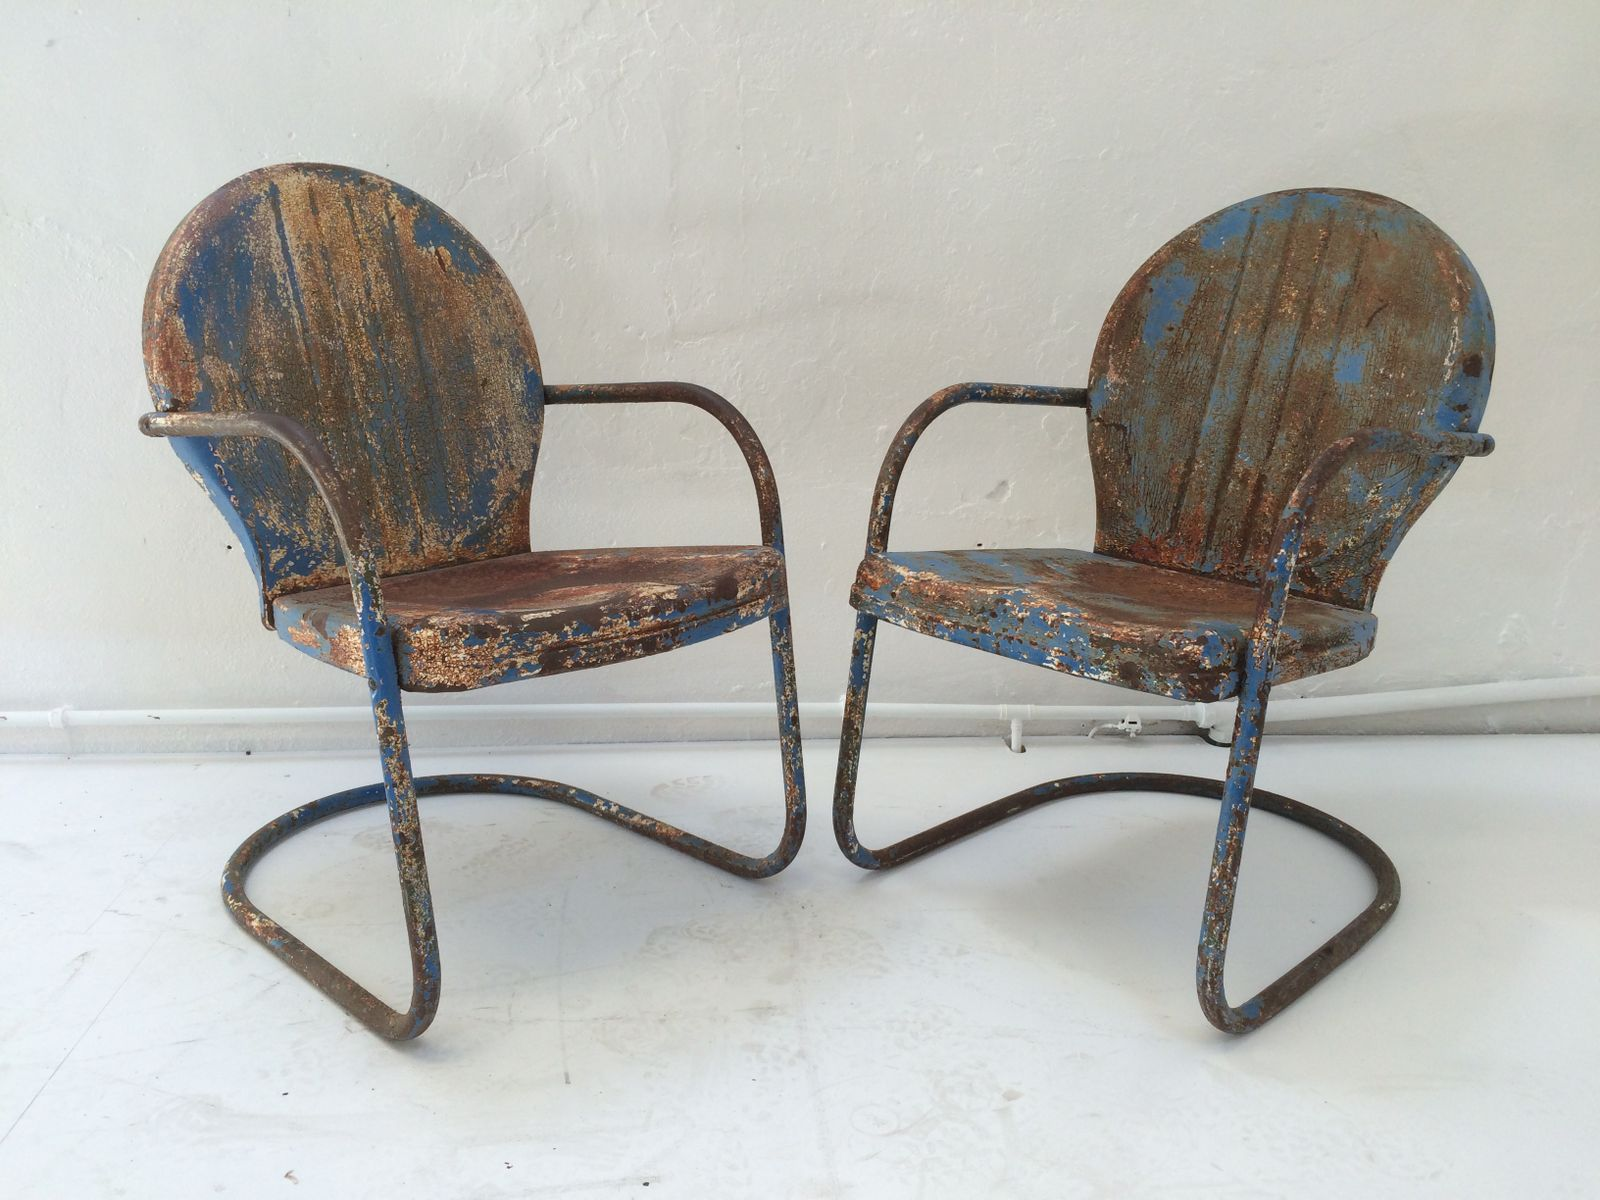 clam shell chair power recliner mid century american patio chairs 1950s set